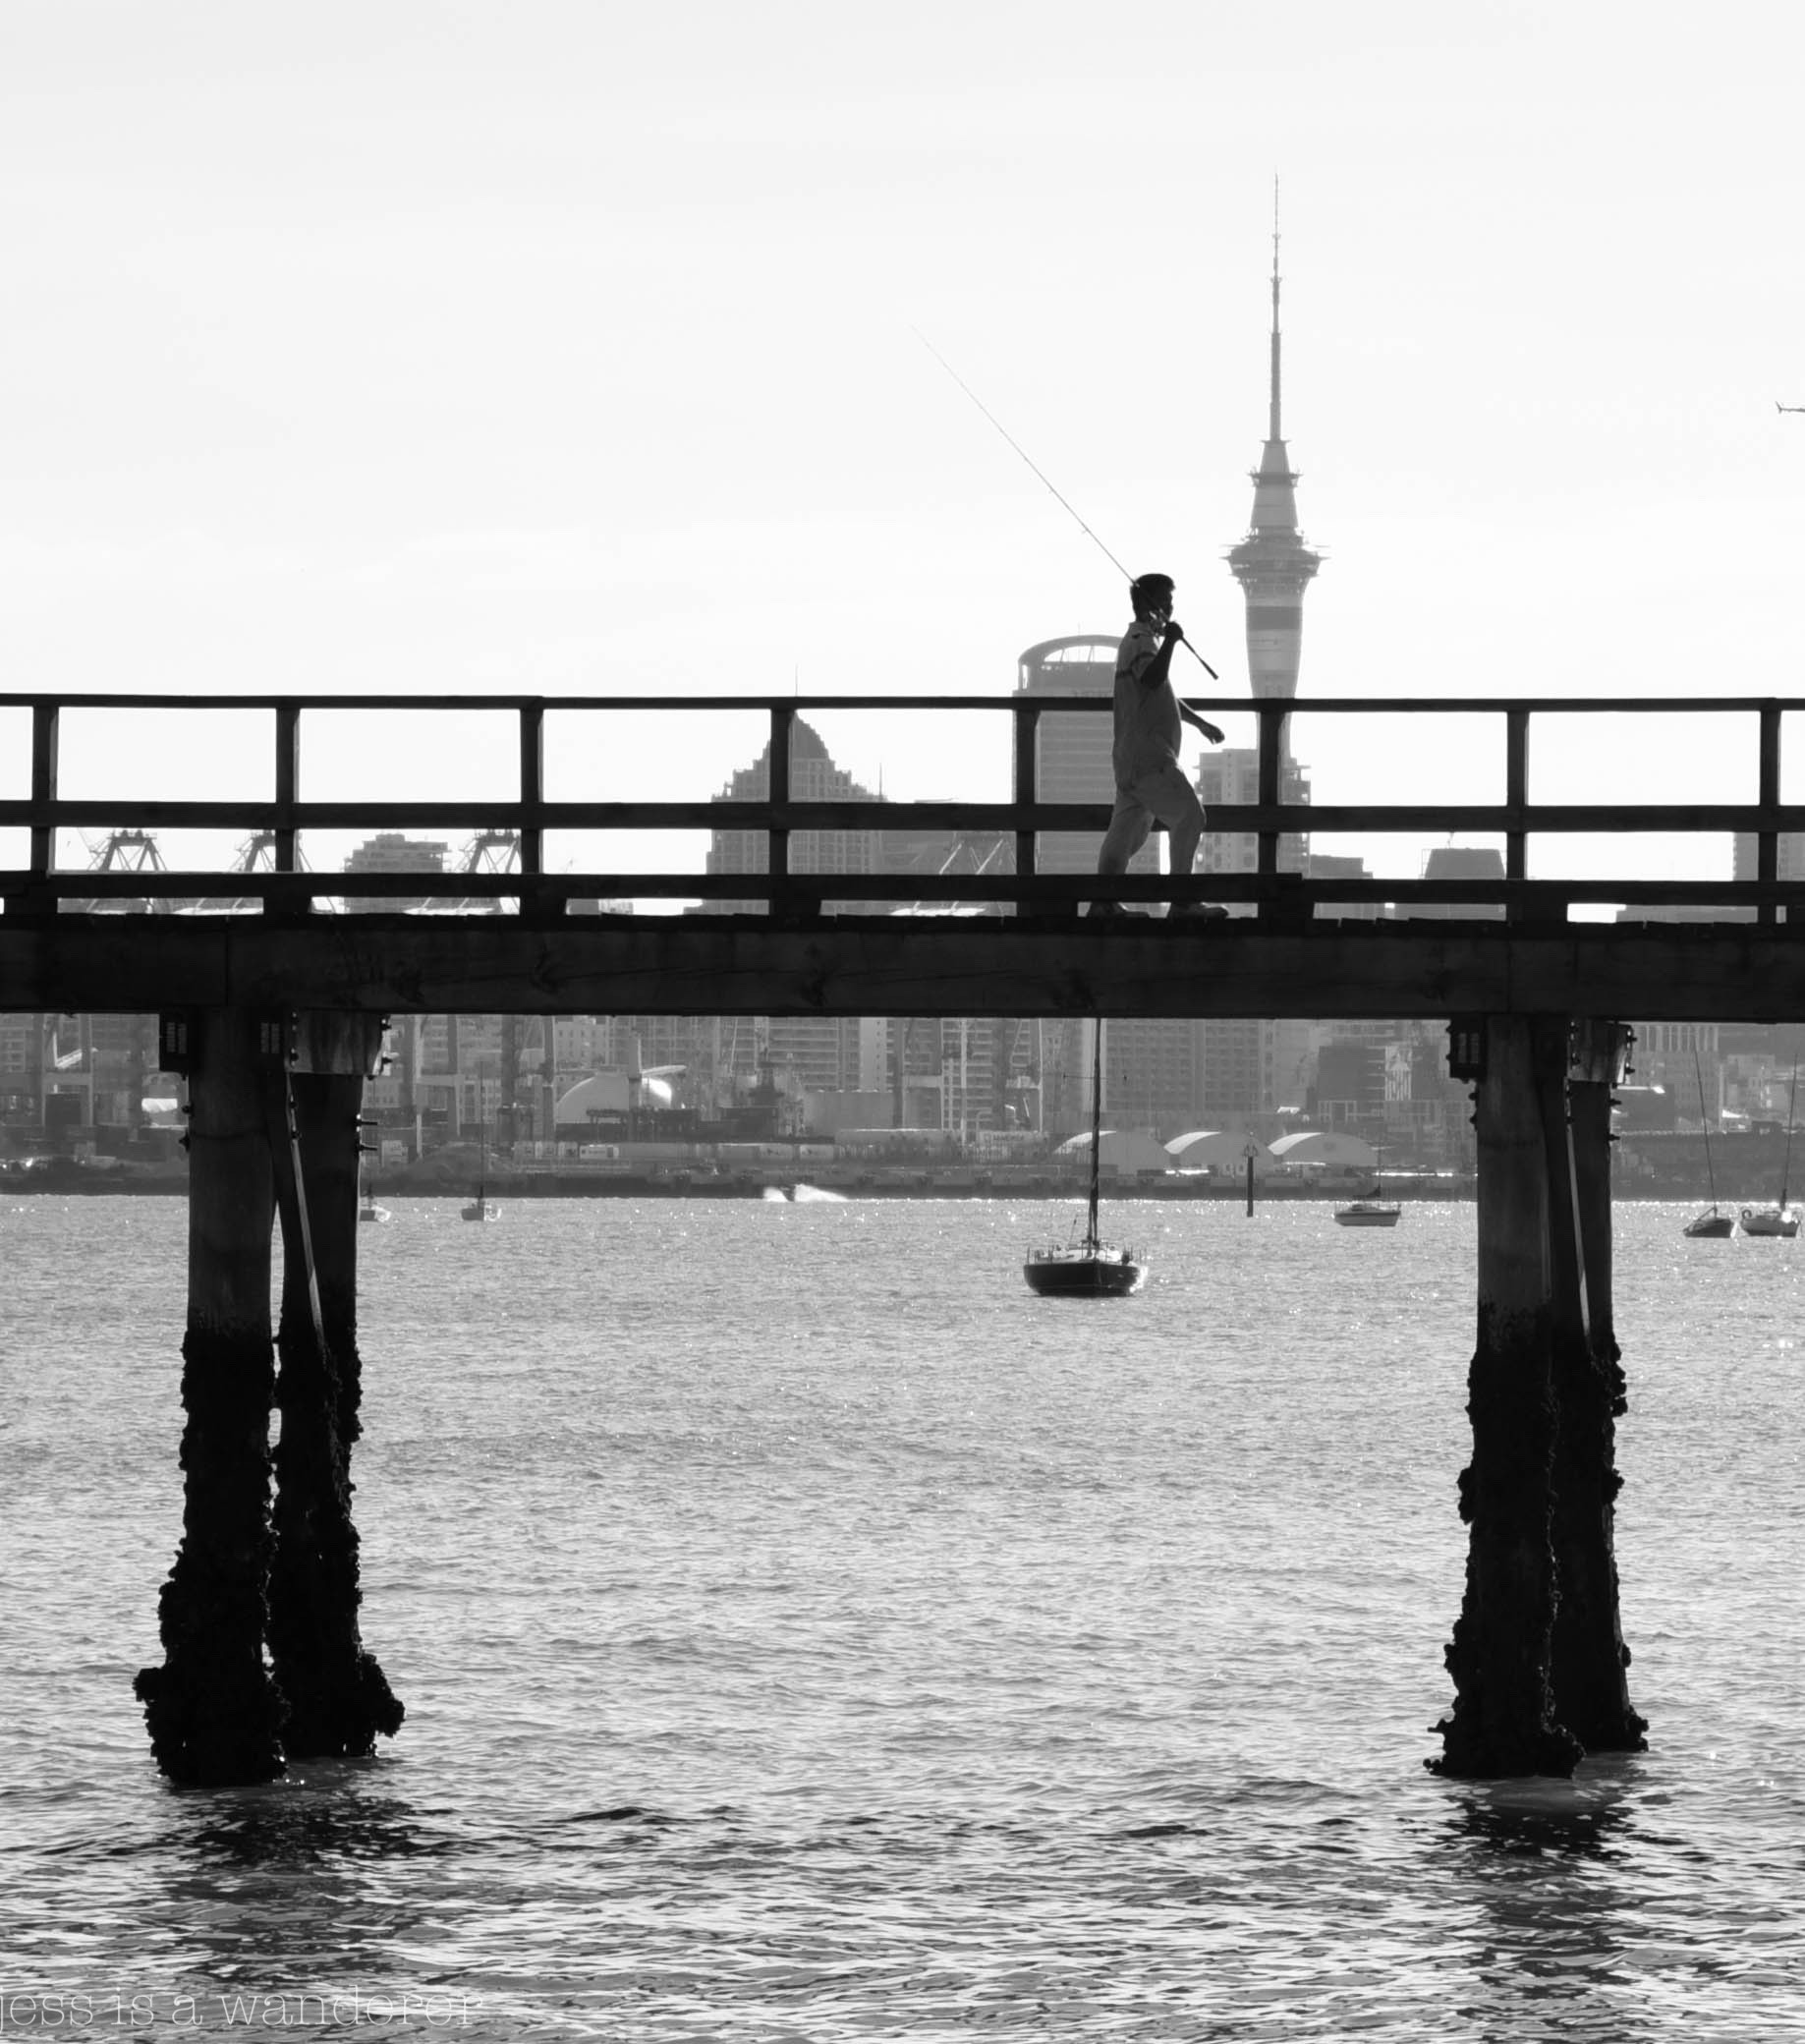 Fisherman on the Pier